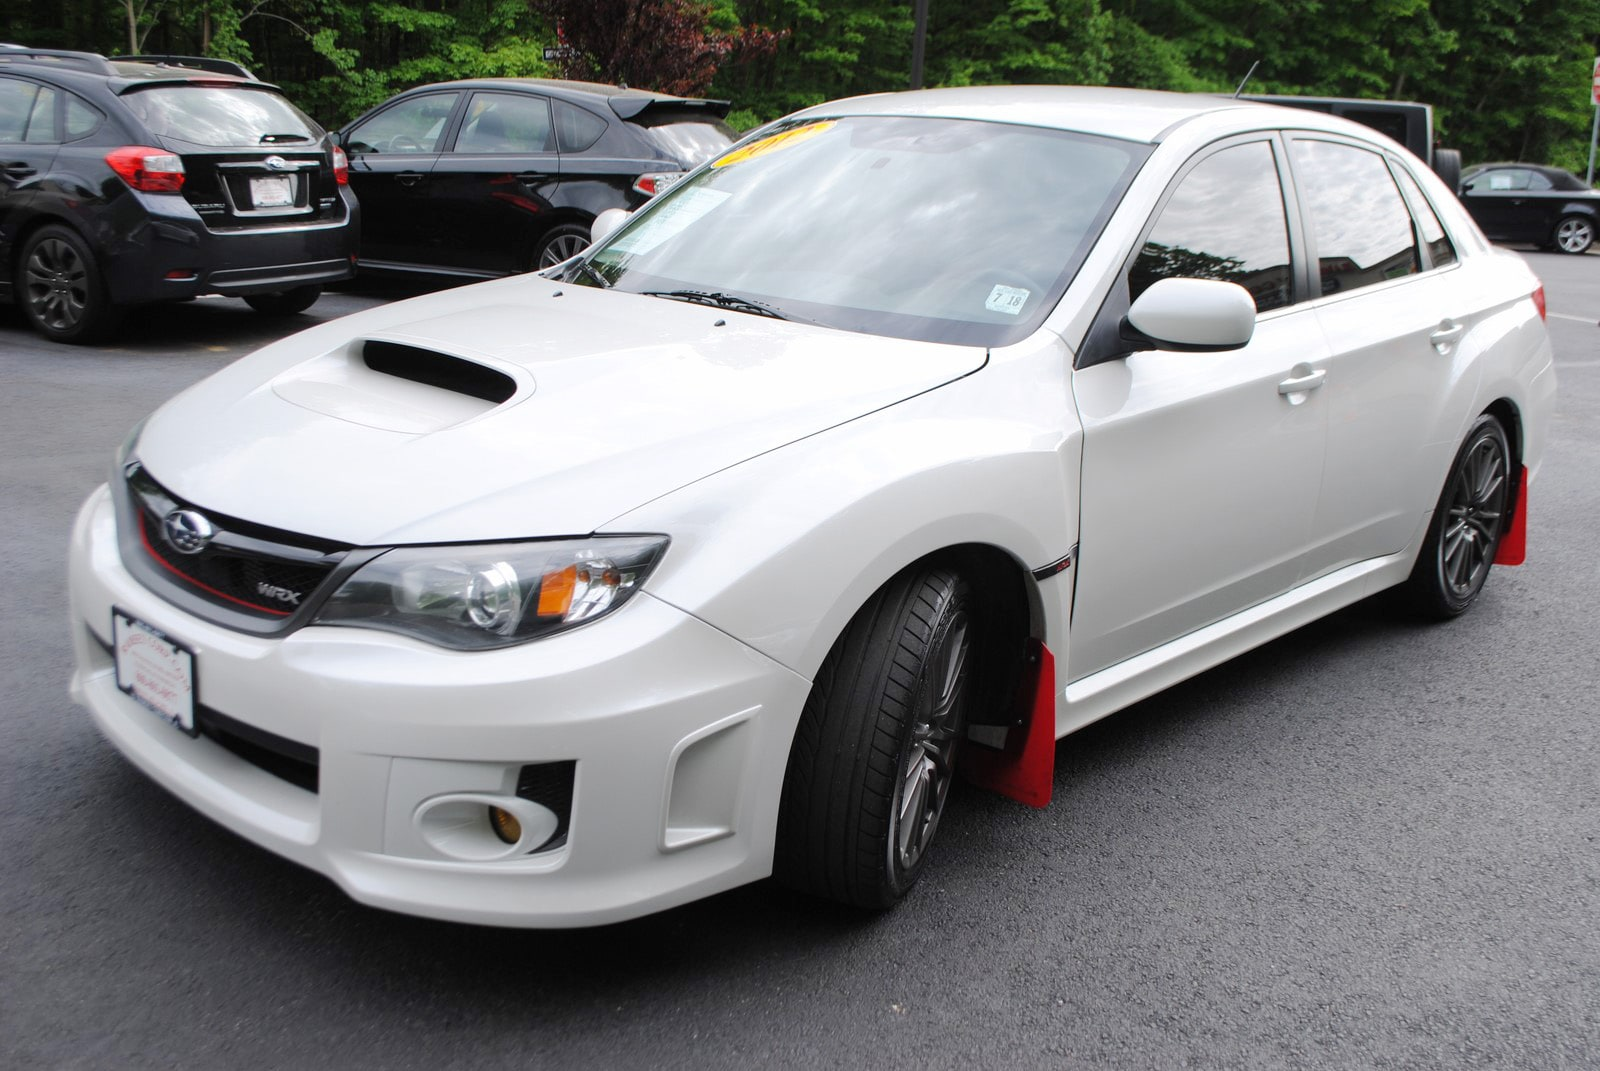 used 2012 subaru impreza wrx for sale west milford nj. Black Bedroom Furniture Sets. Home Design Ideas